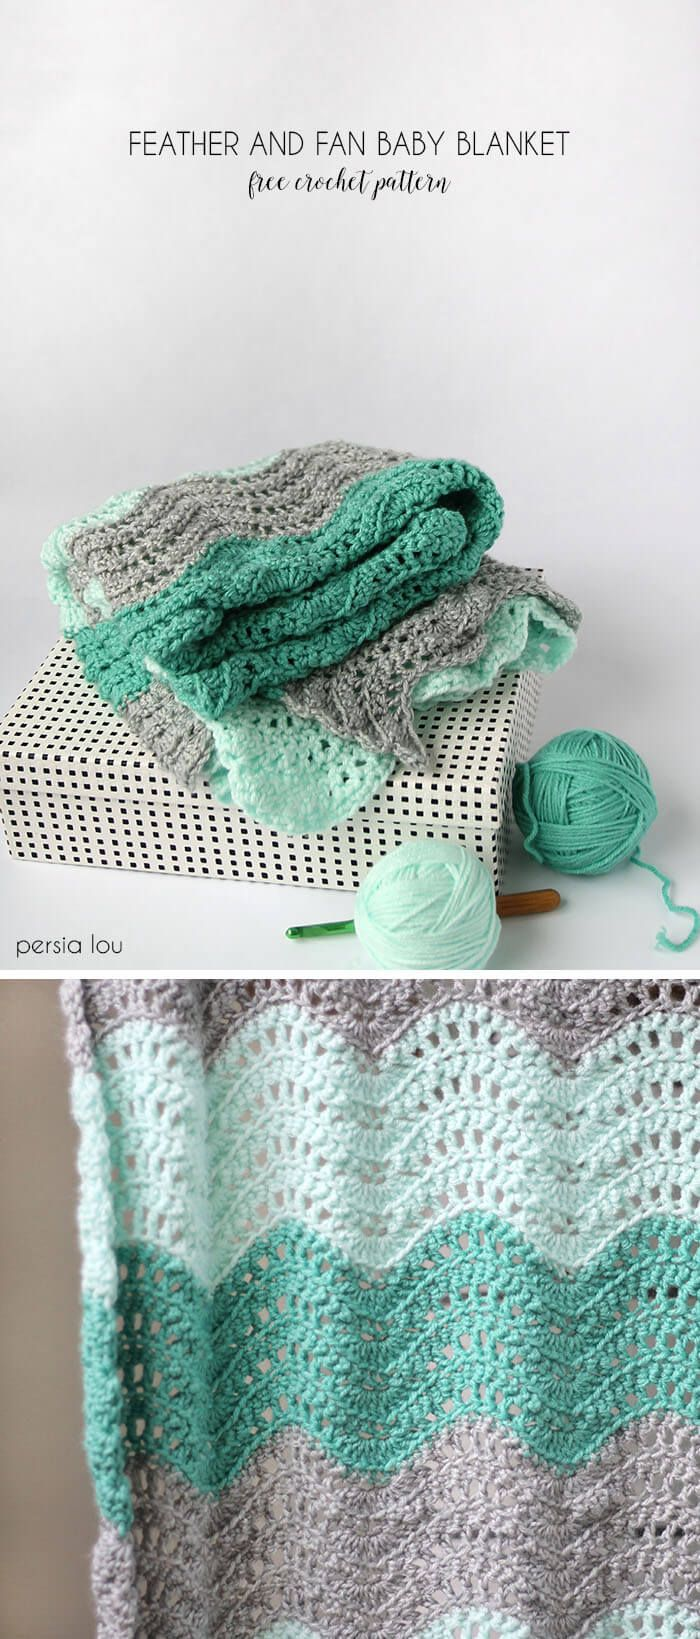 Crochet Feather and Fan Baby Blanket - Free Pattern | Manta, Tejido ...